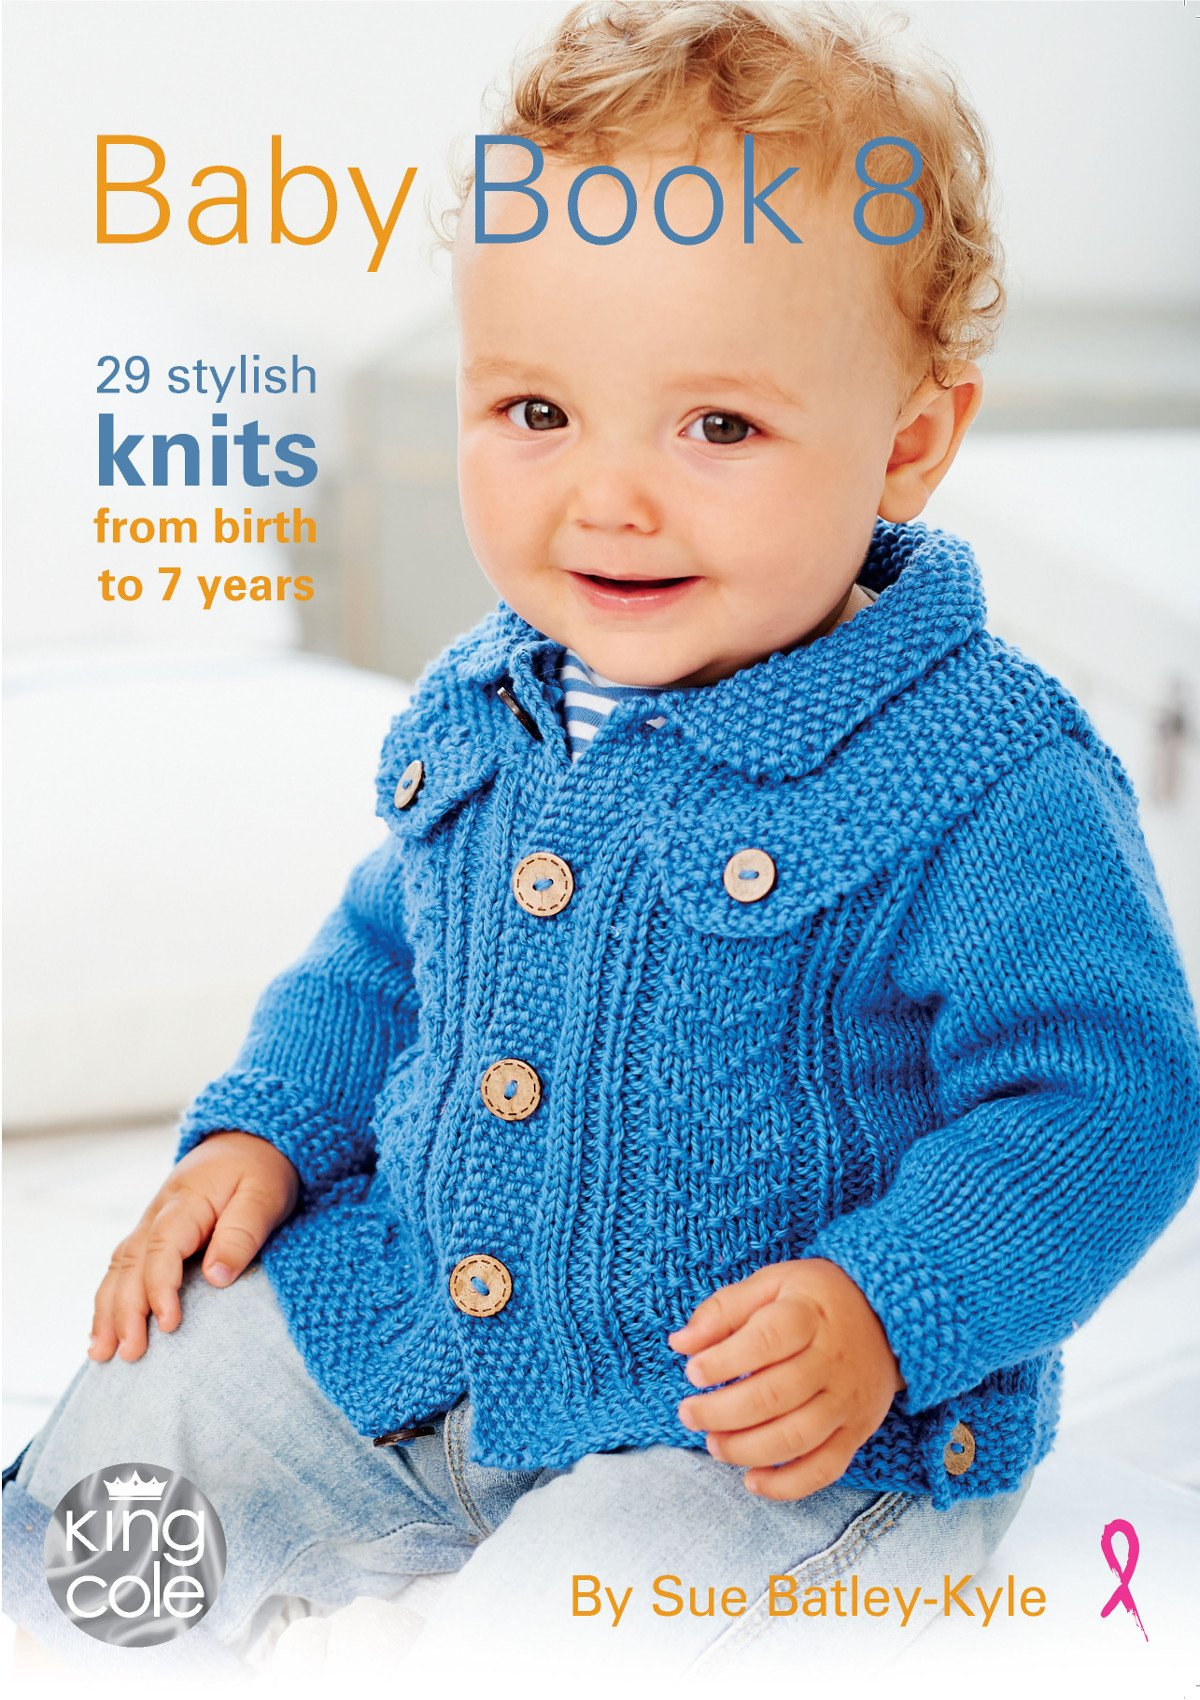 King Cole Baby Alpaca Patterns - Sewing Patterns for Baby